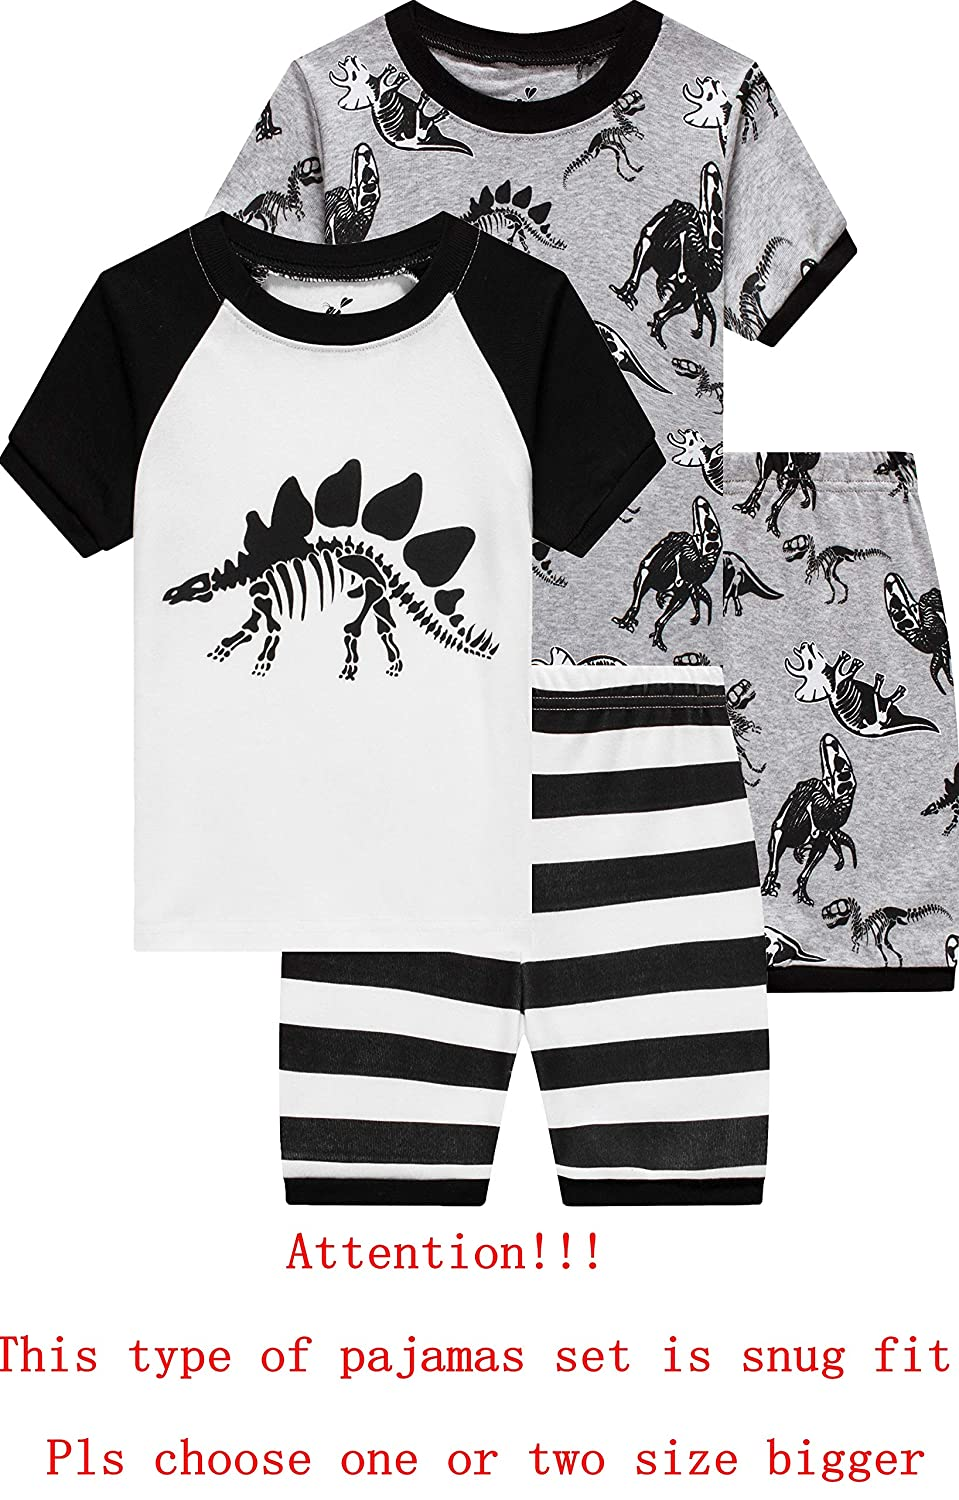 Pajamas for Boys Cotton Toddler Pjs 2 Piece Baby Clothes Sets Kids Sleepwear